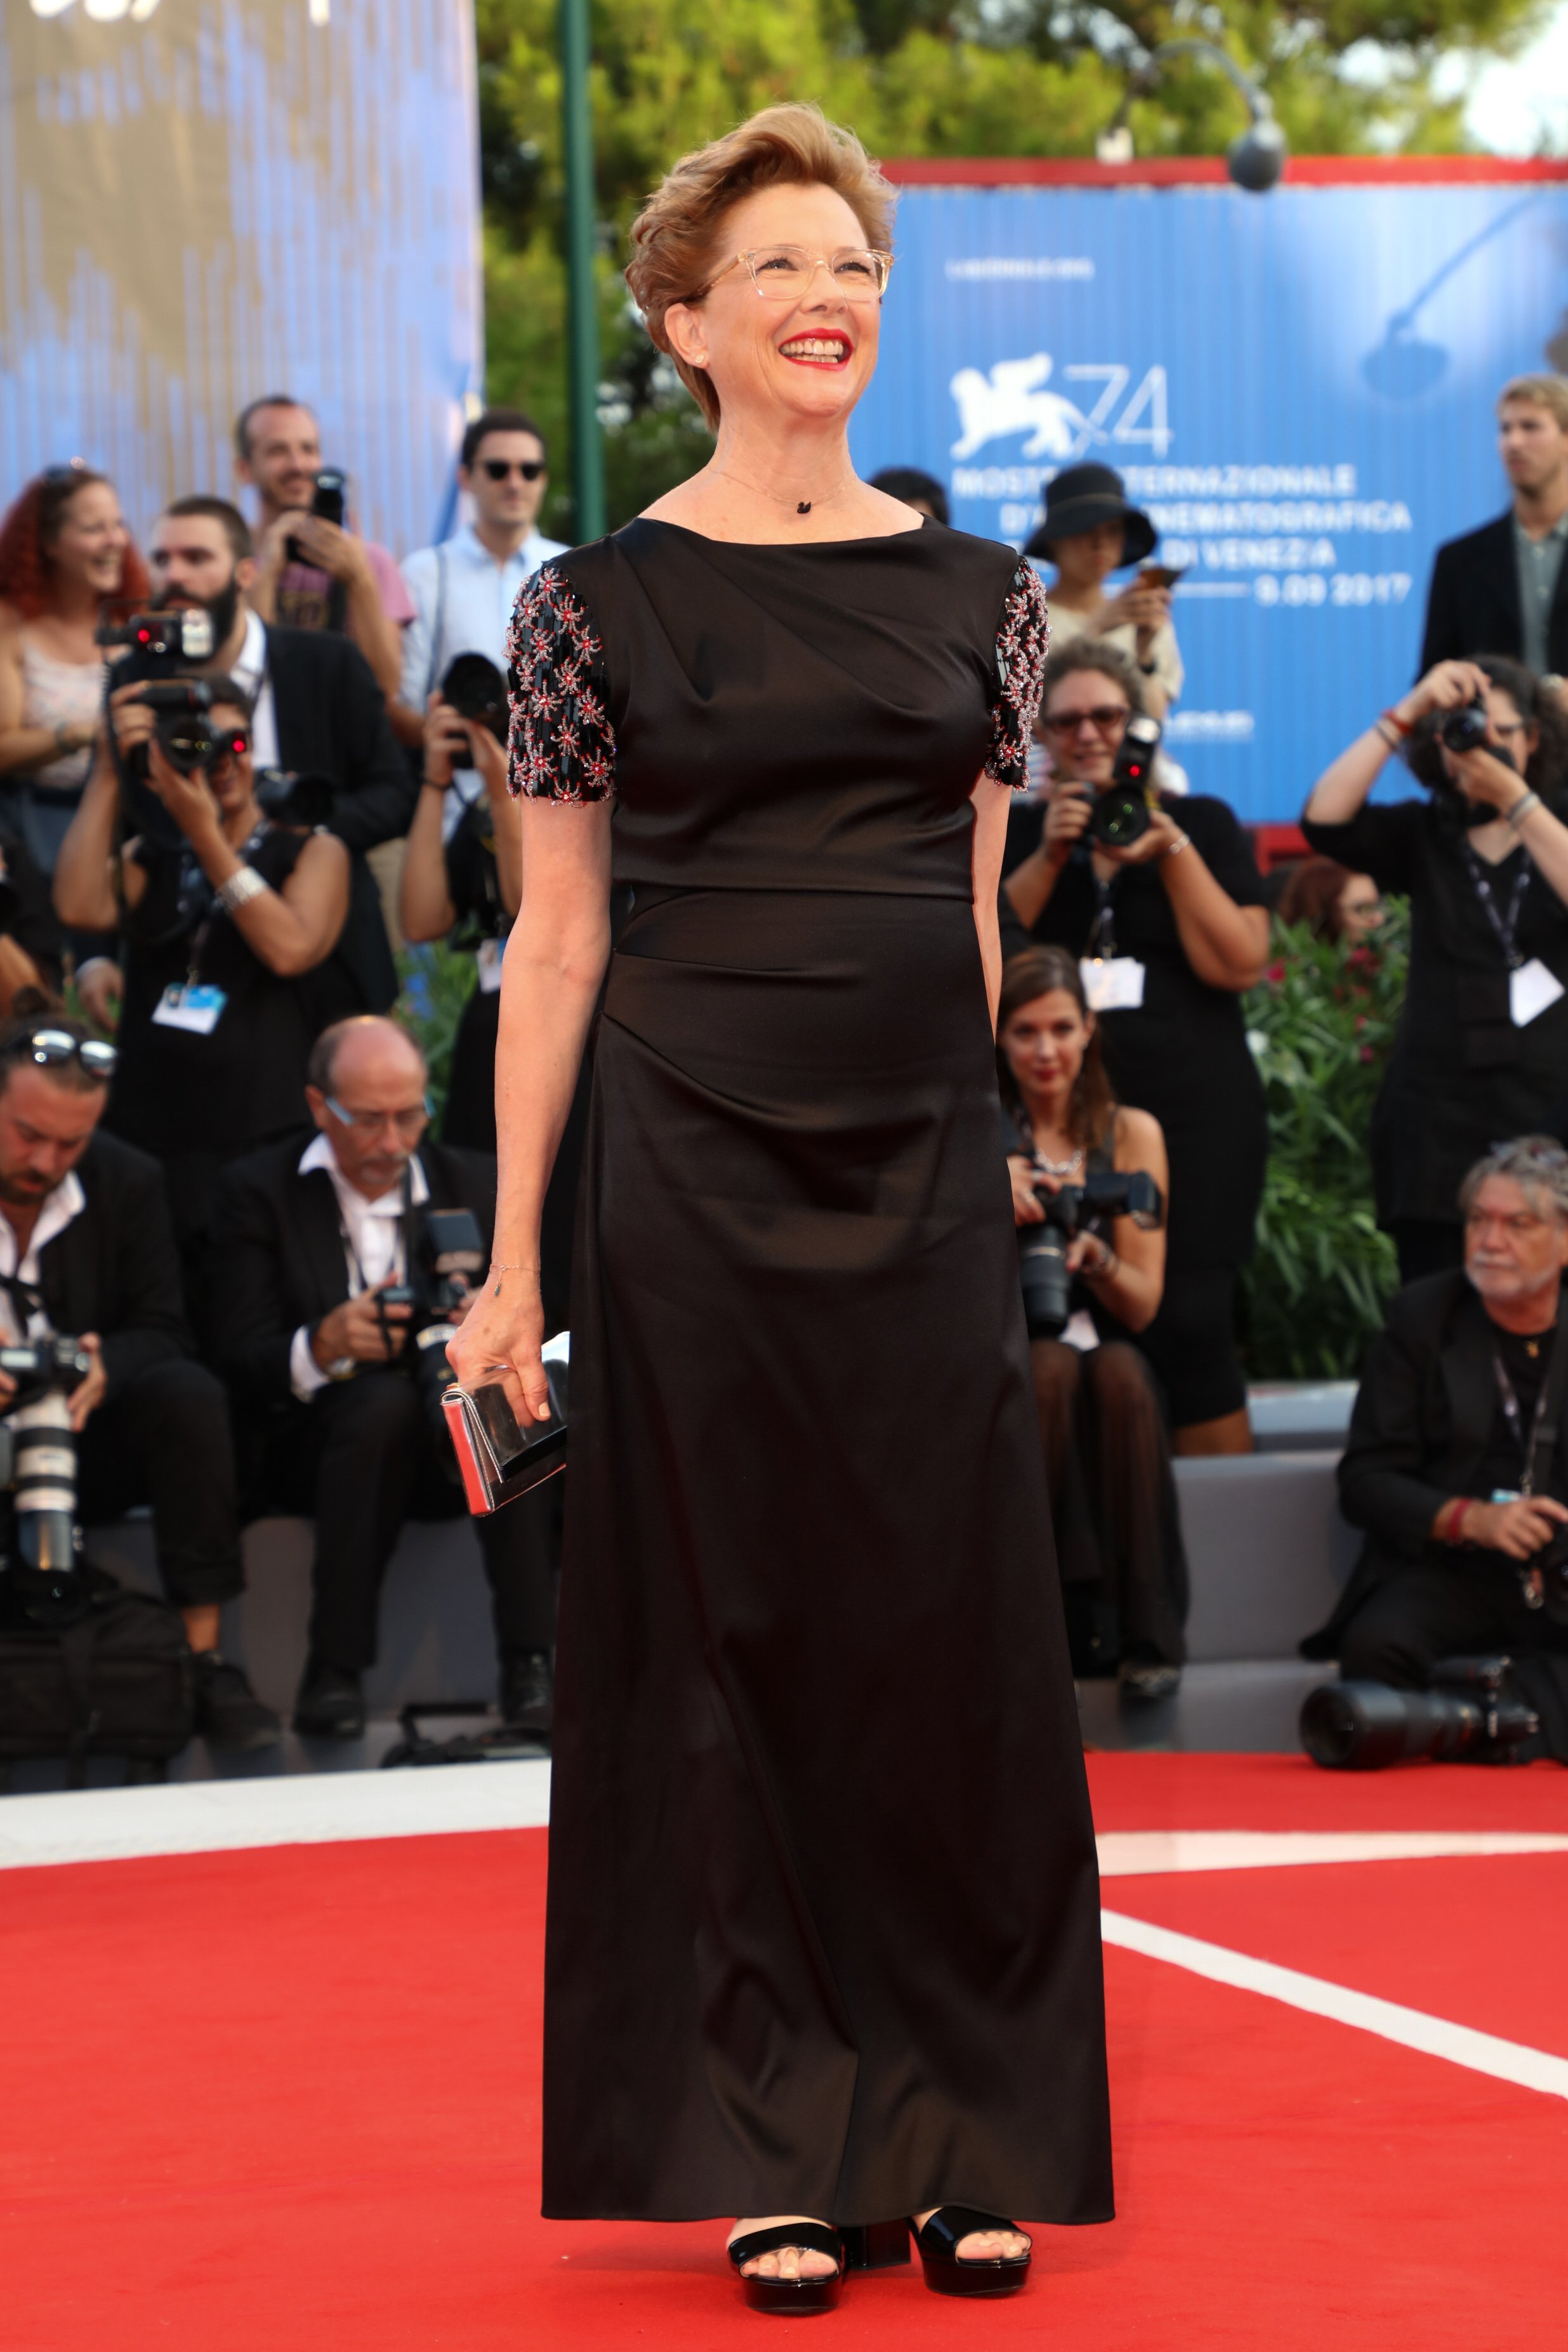 President of Jury of 74th Venice Film Festival attends Opening Ceremony and 'Downsizing ' premier at the 74th Venice Film Festival on 30th August, 2017, Venice, Italy, Image: 347777342, License: Rights-managed, Restrictions: , Model Release: no, Credit line: Profimedia, KCS Presse